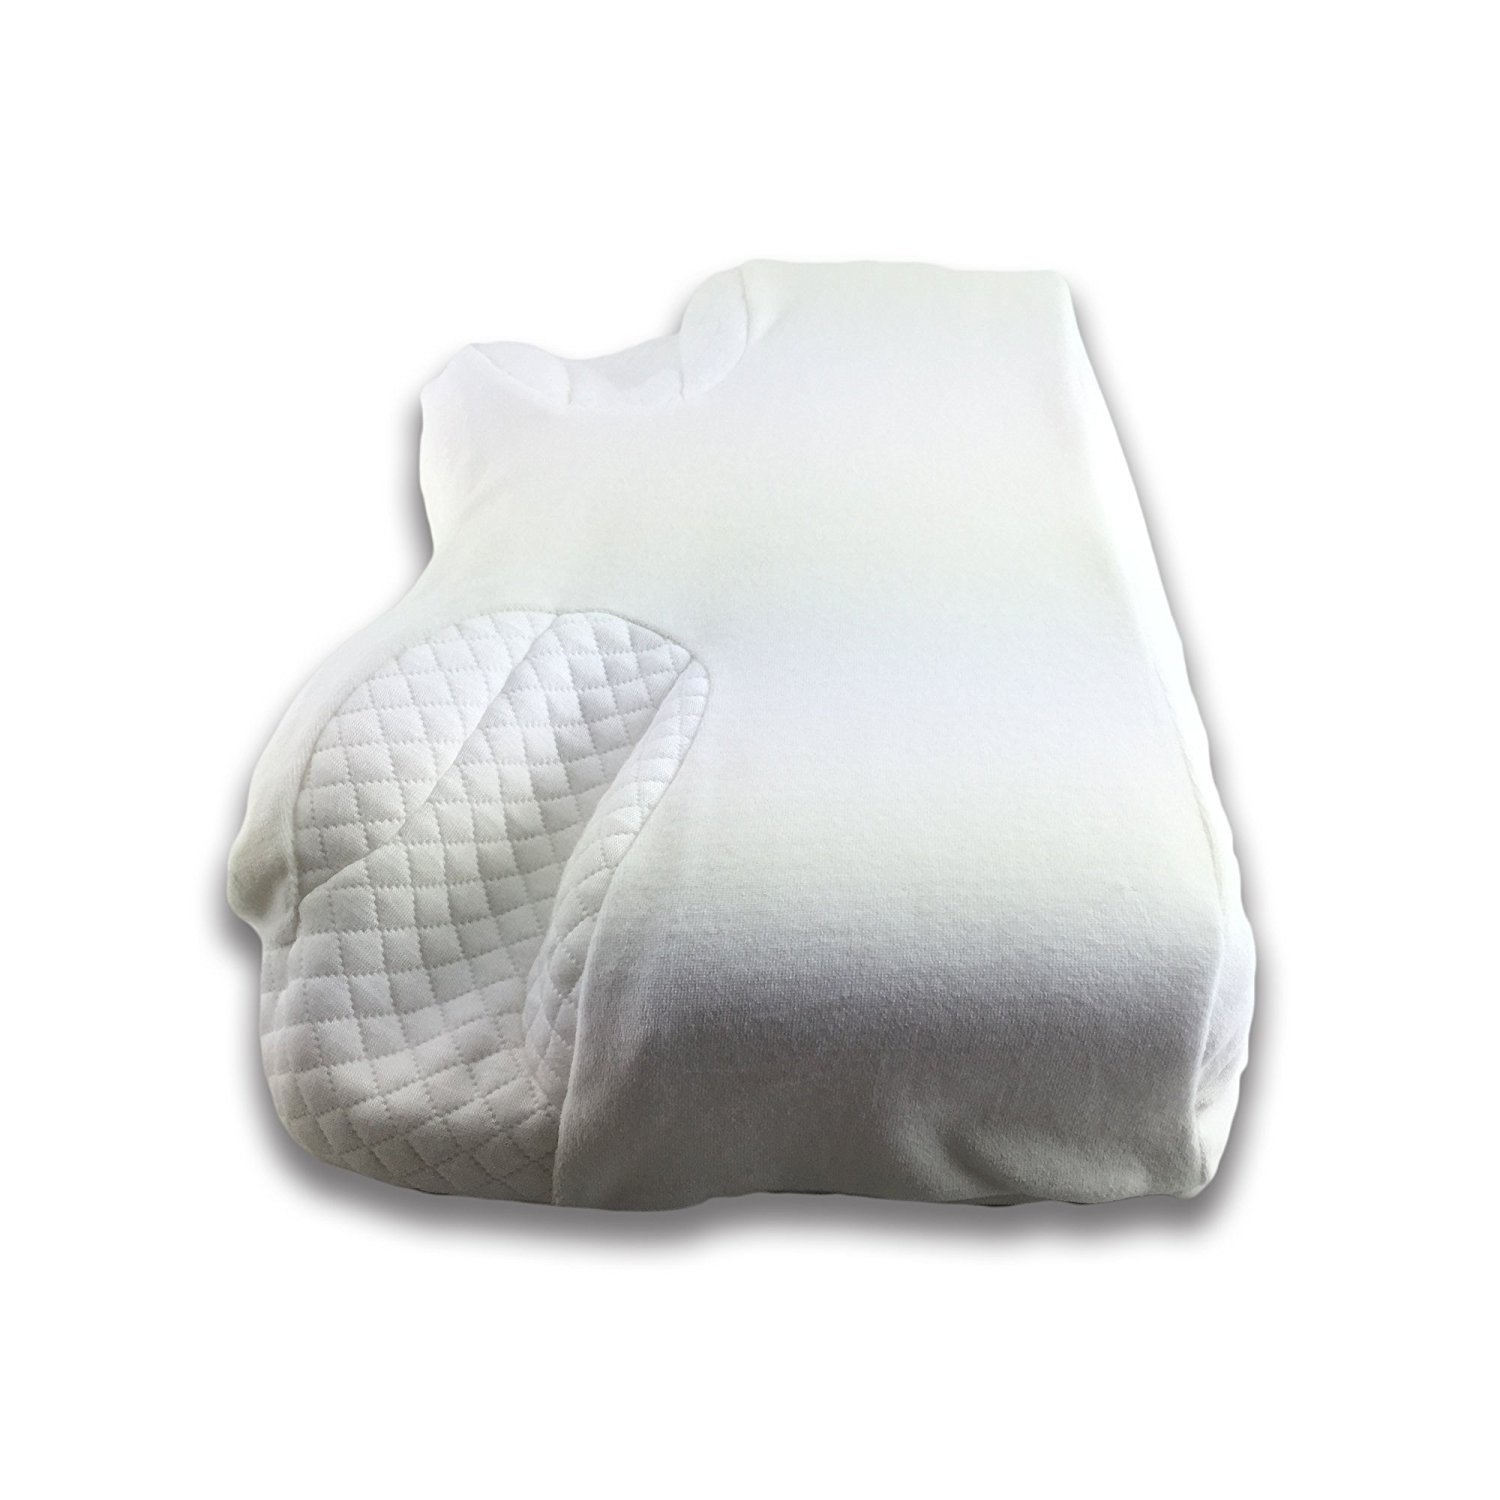 Pillow For CPAP, BiPAP, APAP Machine Users - Comfort for Side, Back, & Stomach Sleepers to Reduce Face